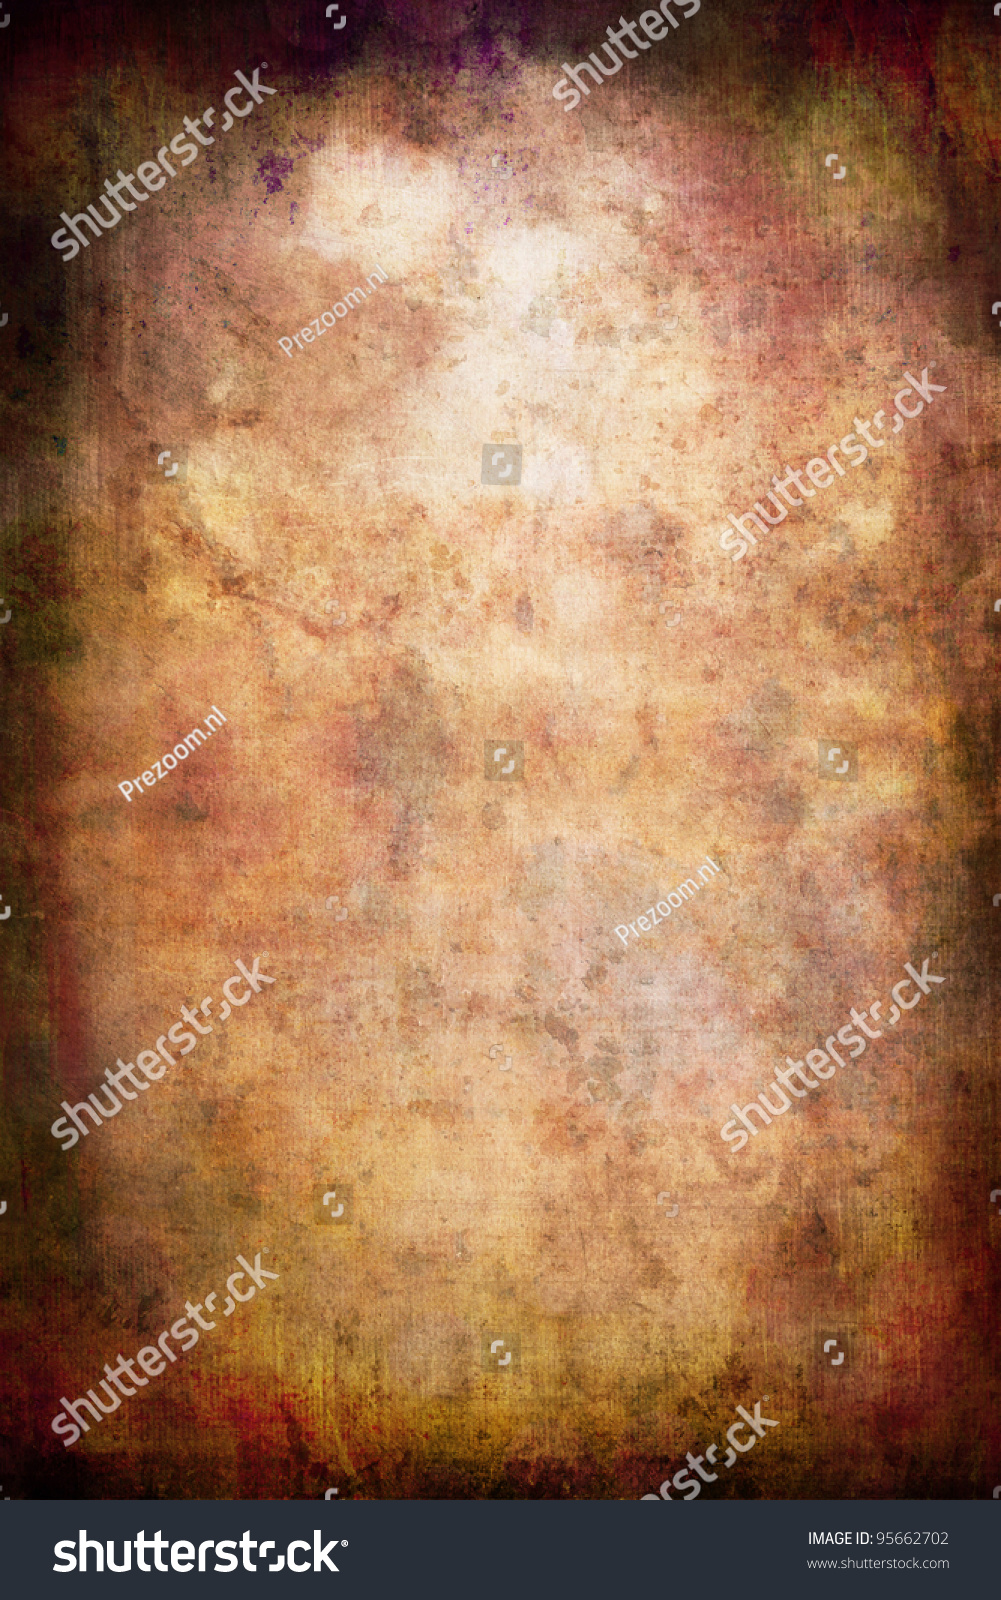 Old Rustic Vintage Textured Paper Wallpaper Background